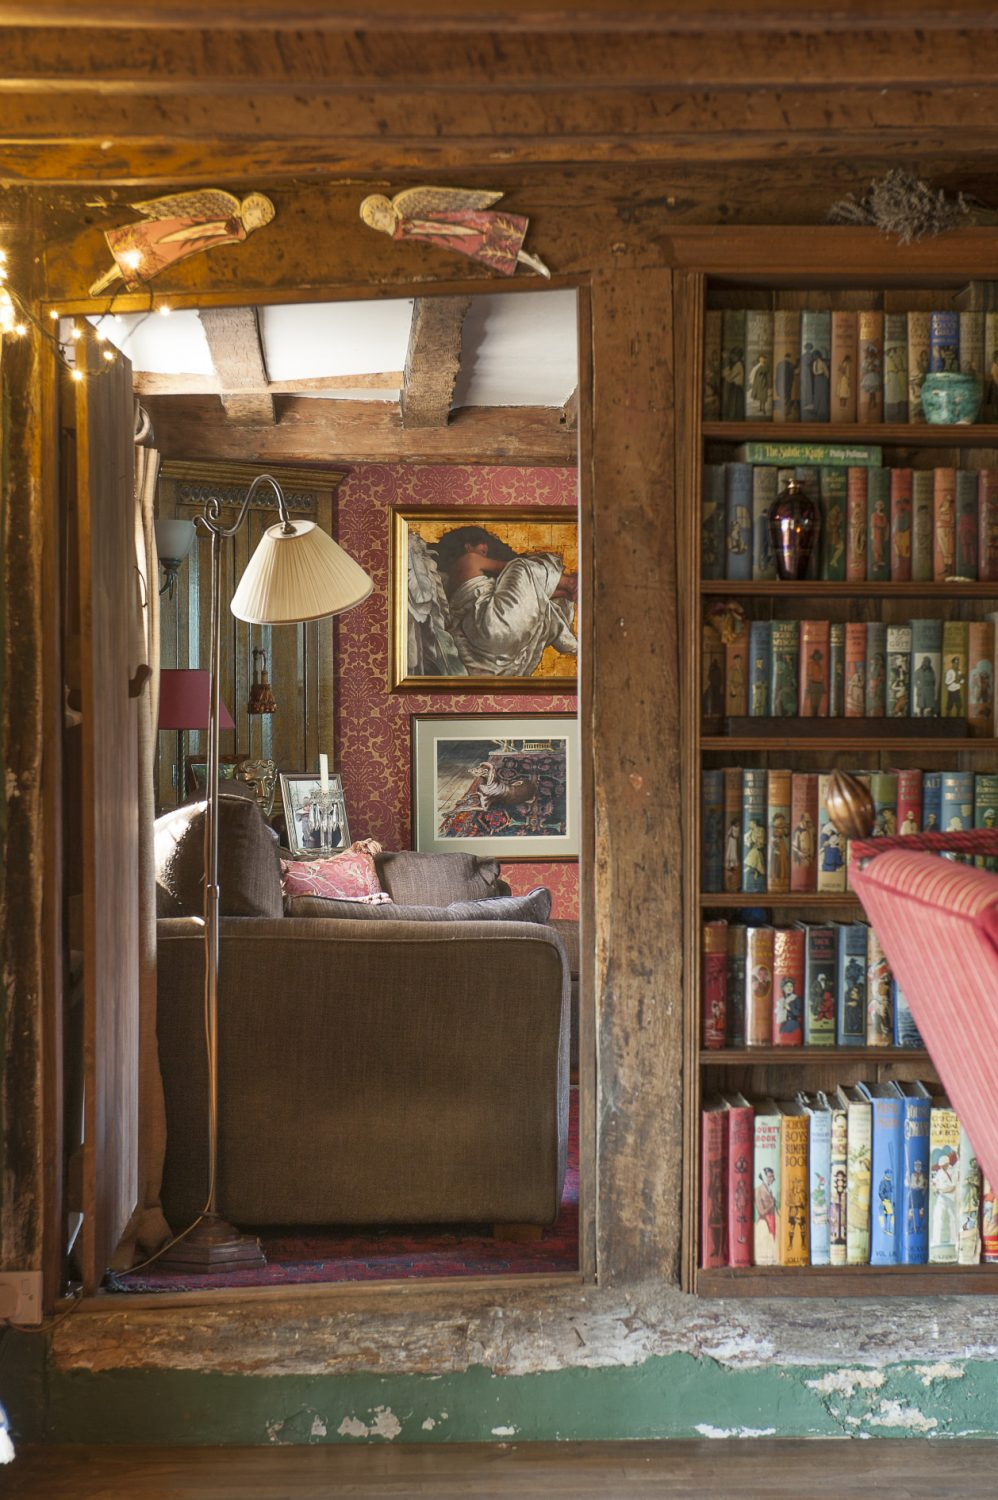 Instead of wallpaper depicting the spines of books, Tim and Eve have a wall of children's books dating from the First World War to the mid 1950s